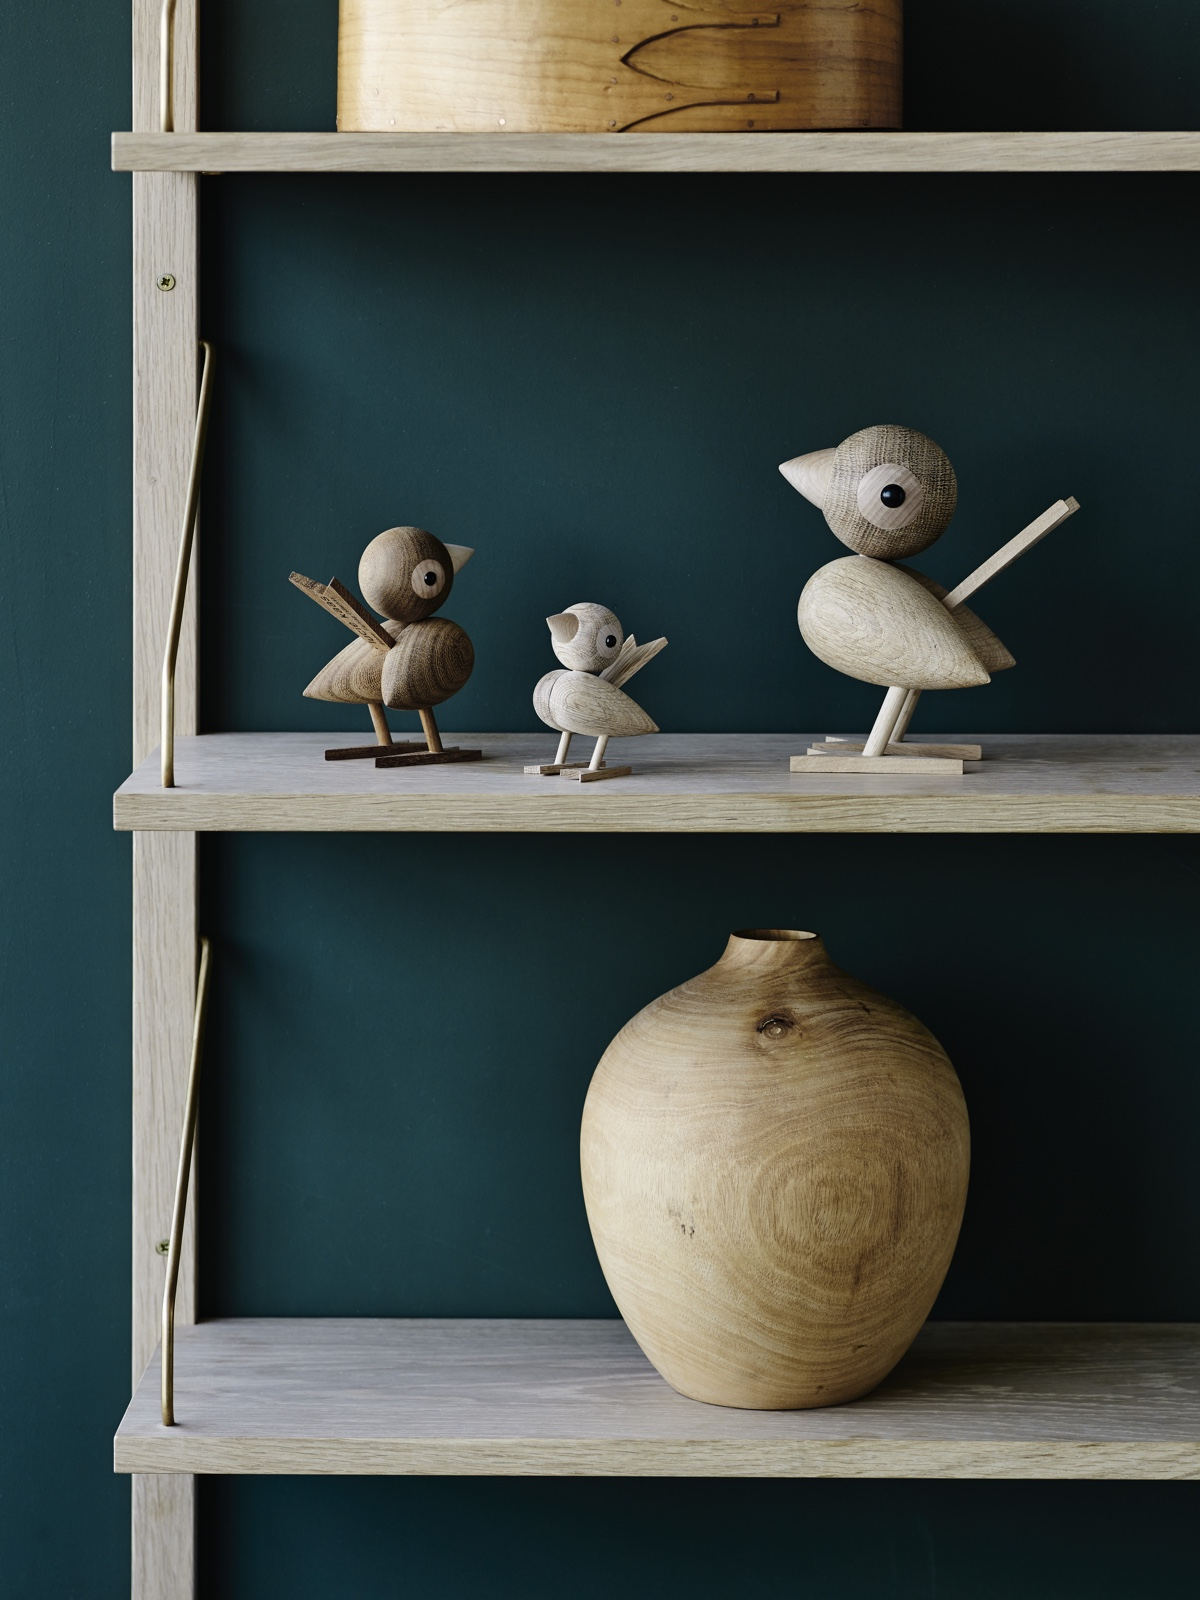 Gunnar Flørning's sparrow (1958) is available in three sizes – 8cm, 12cm & 18cm – in teak and oak.